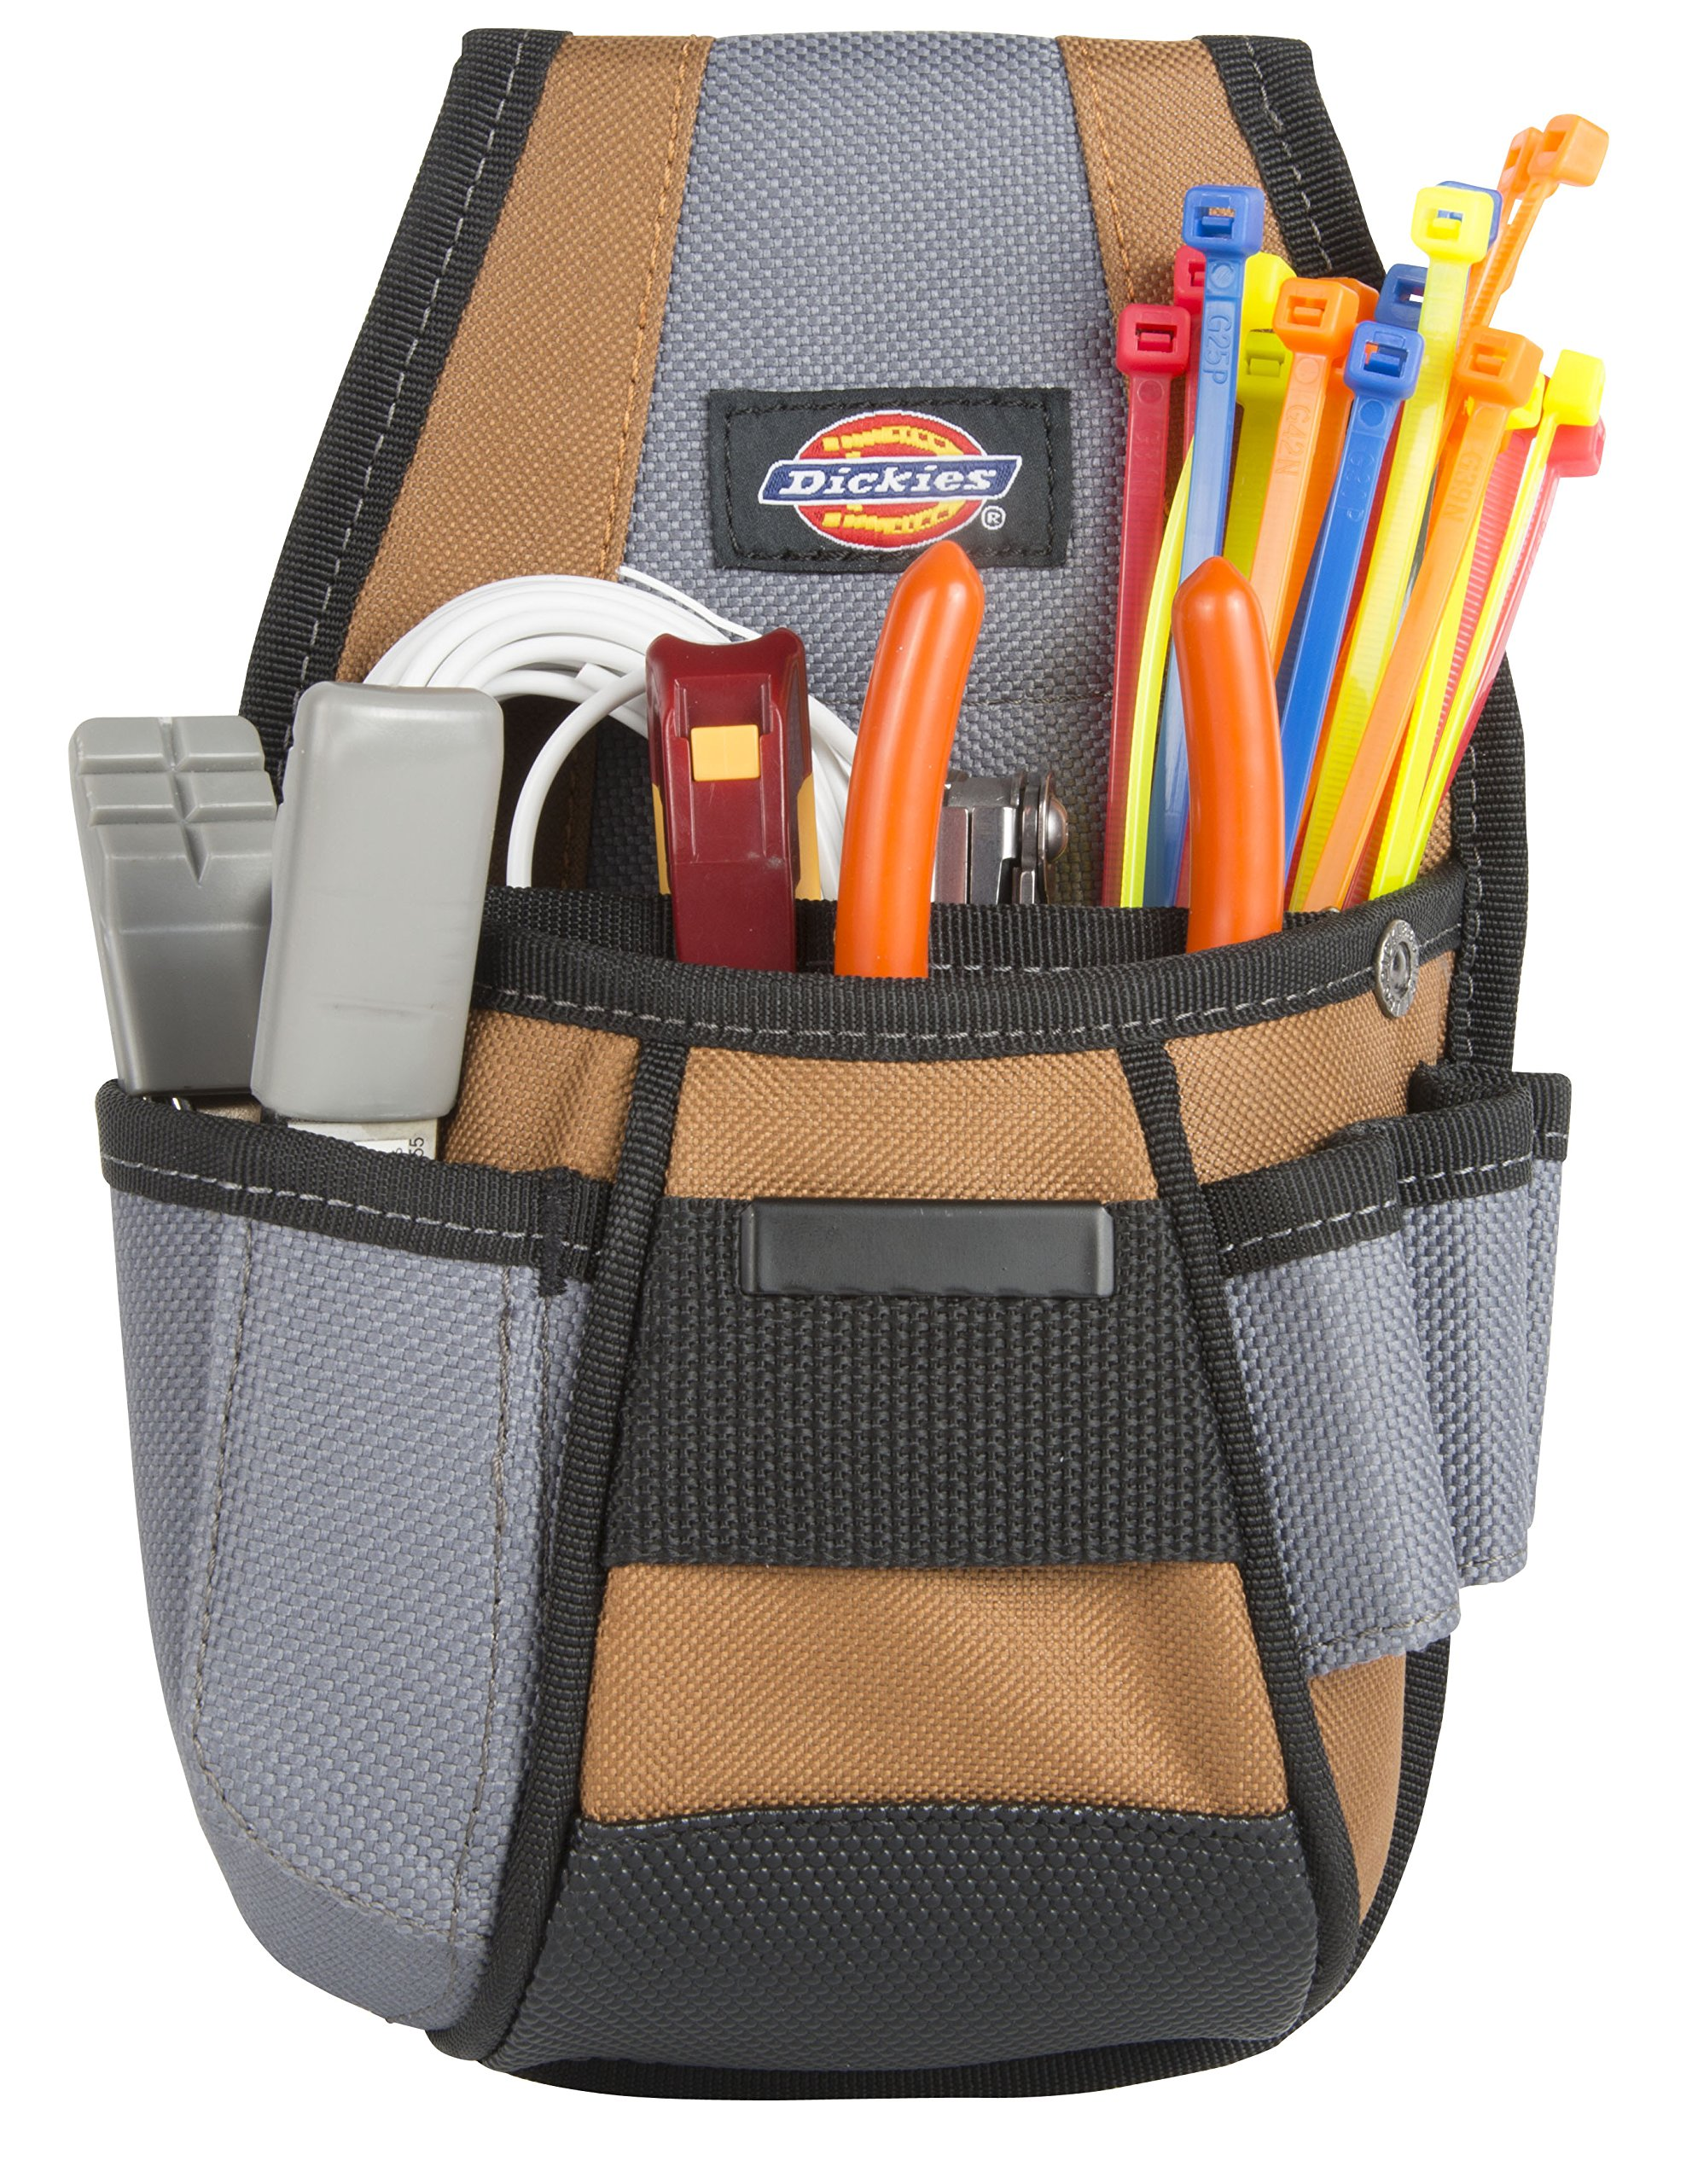 Dickies Work Gear 57099 4-Pocket Rigid Tool Pouch with Tape Clip by Dickies Work Gear (Image #5)